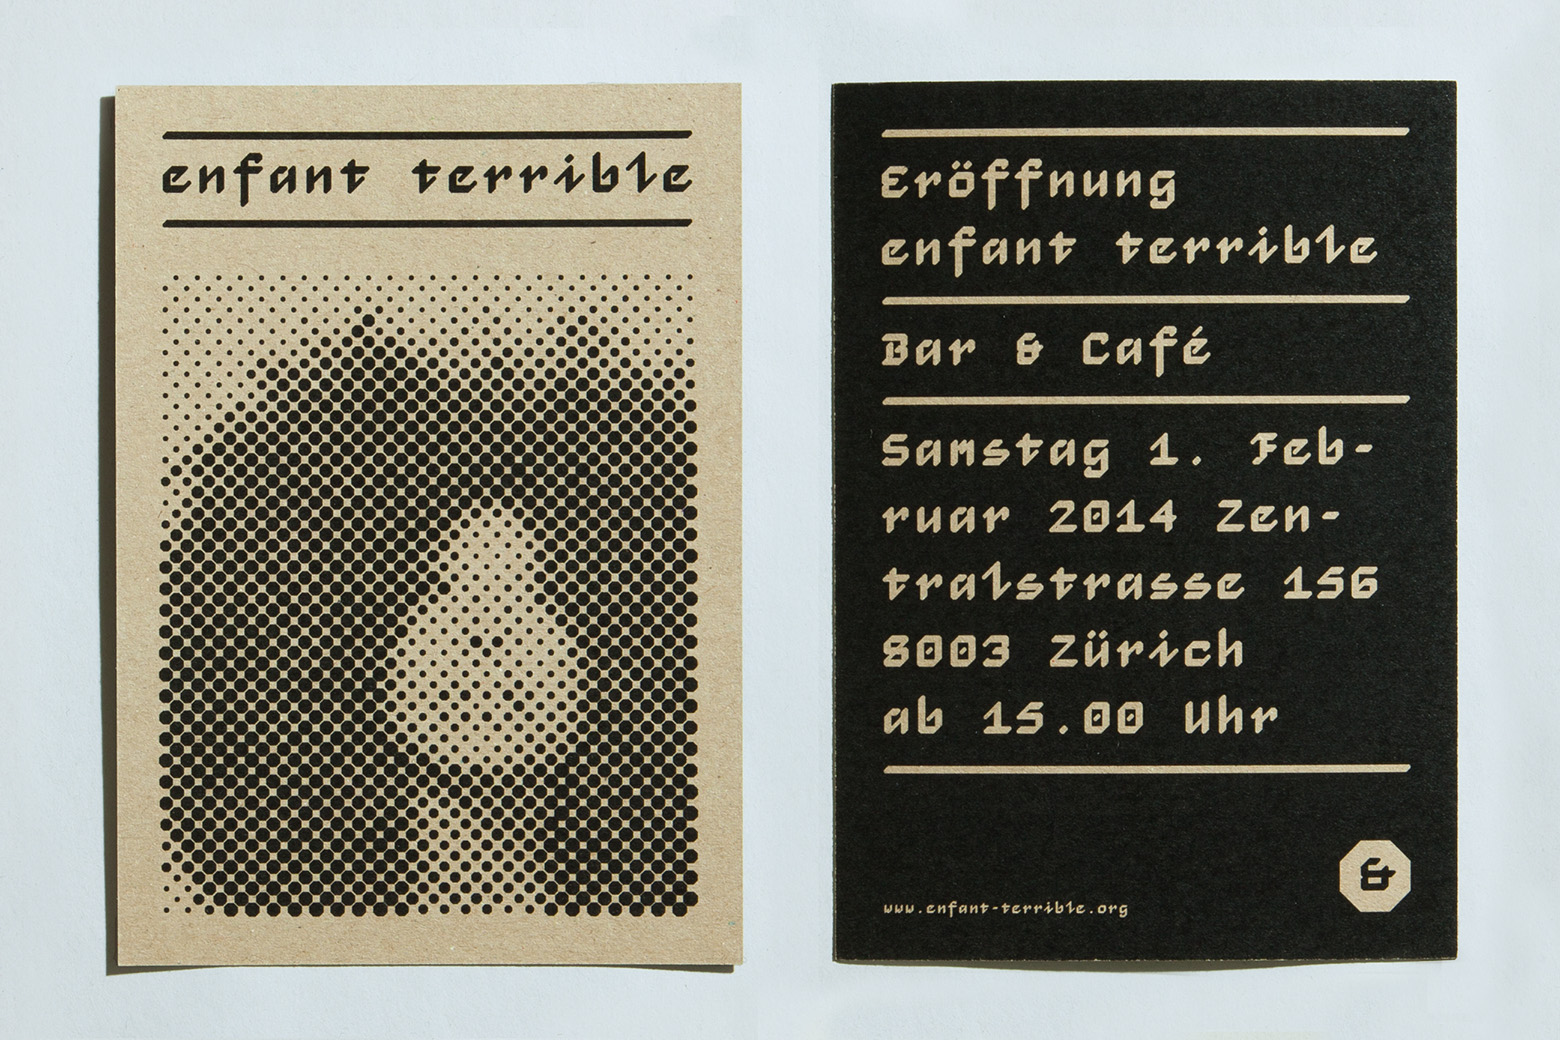 enfant_terrible_flyer_01@2x